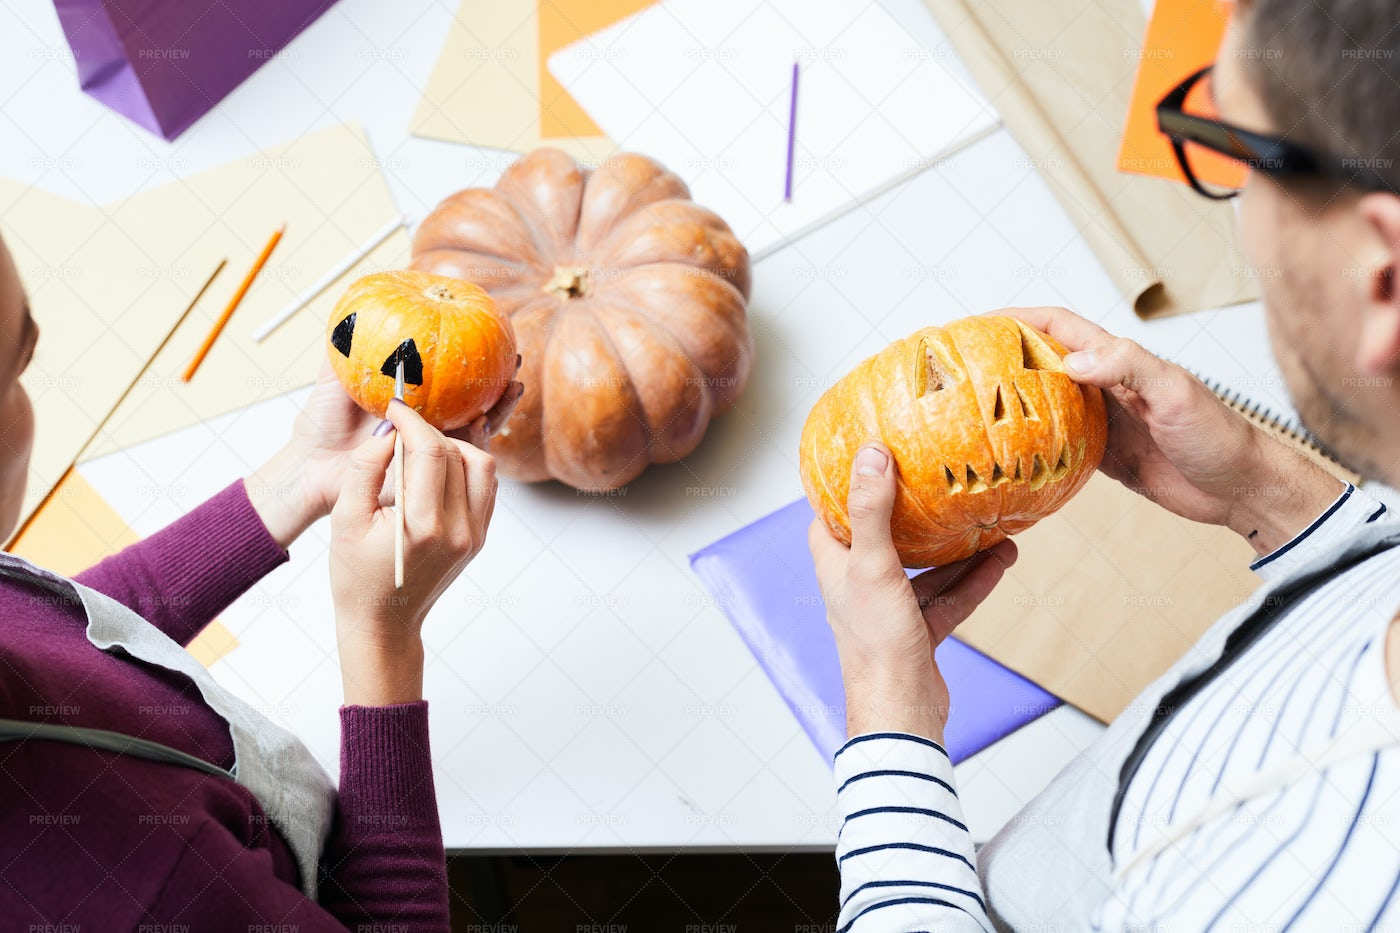 Colleagues Carving And Painting Pumpkins: Stock Photos